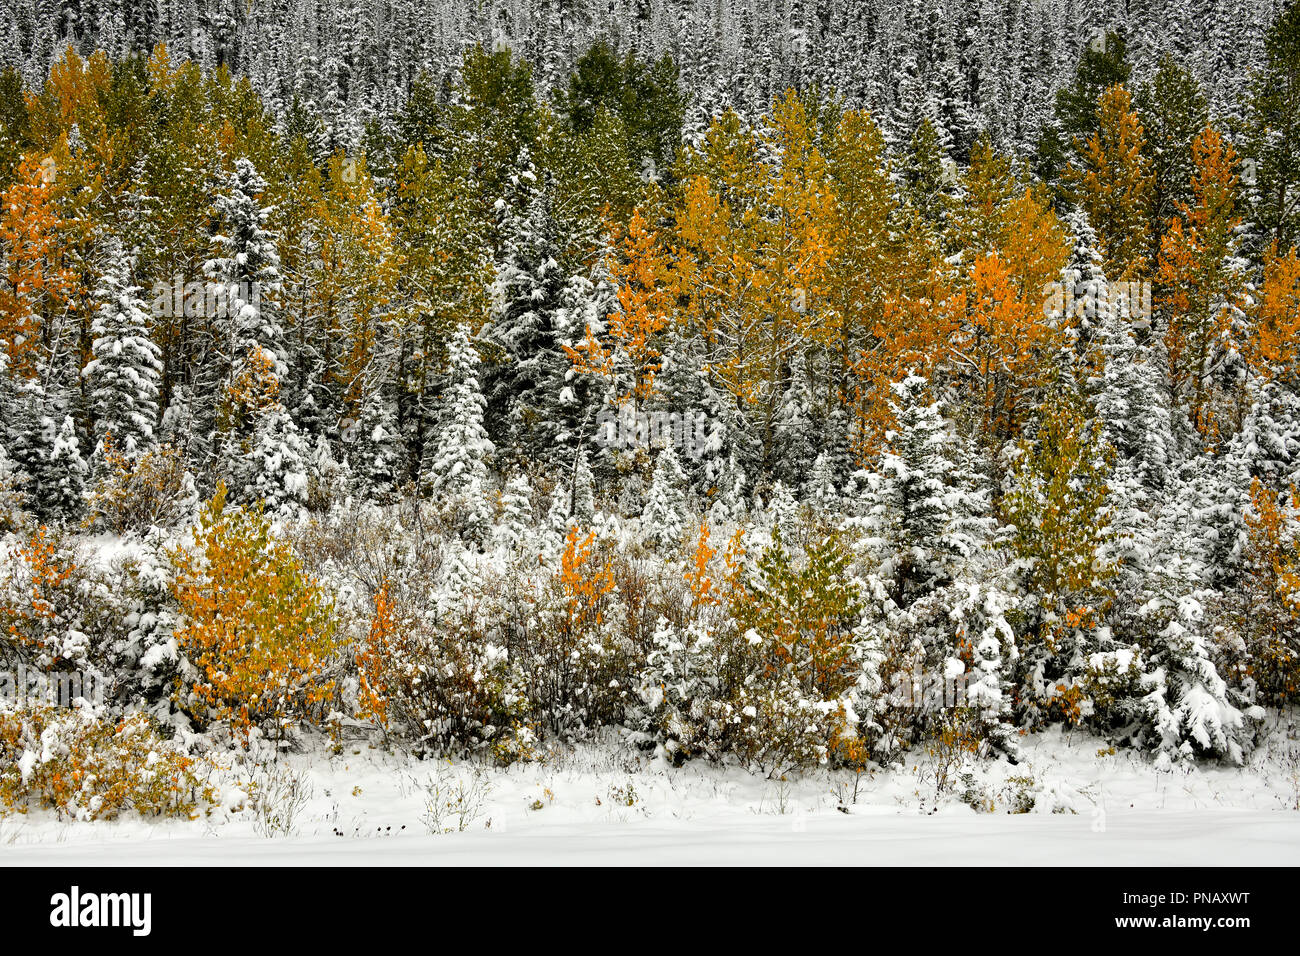 A nature landscape image of colorful vegetation with an early autumn snow fall in rural Alberta Canada. - Stock Image